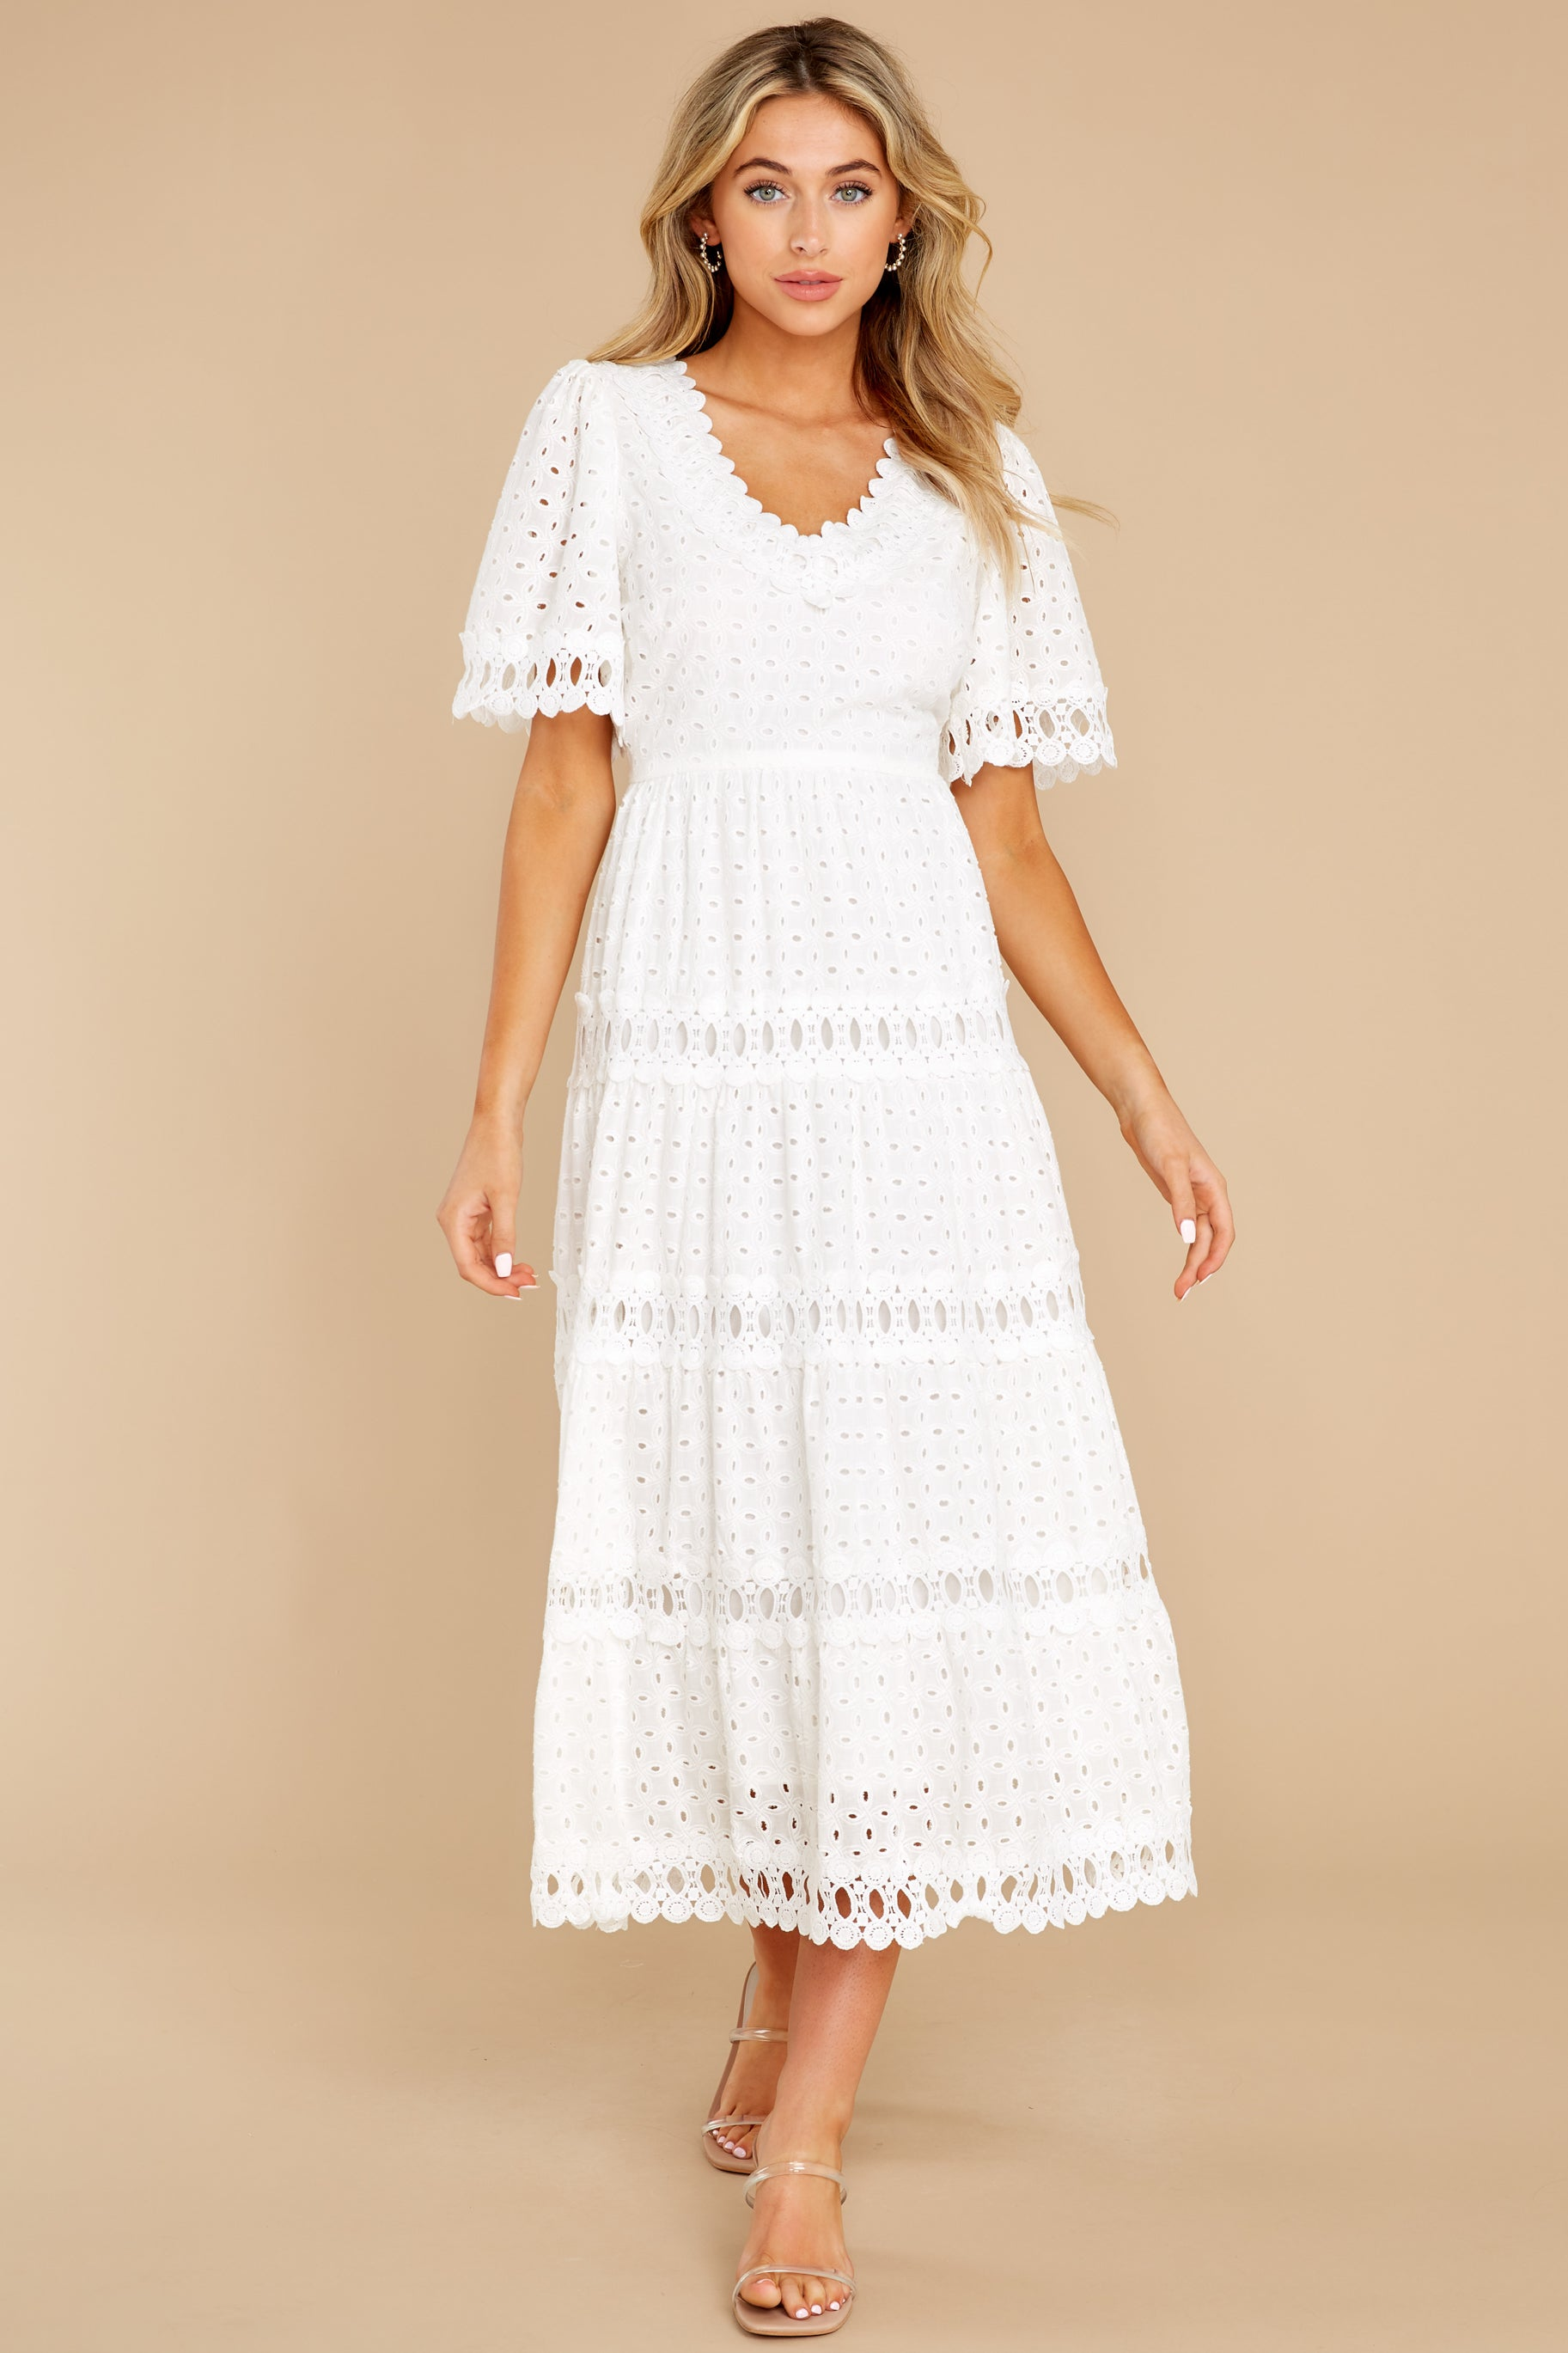 3 Couldn't Help It Off White Eyelet Maxi Dress at reddress.com